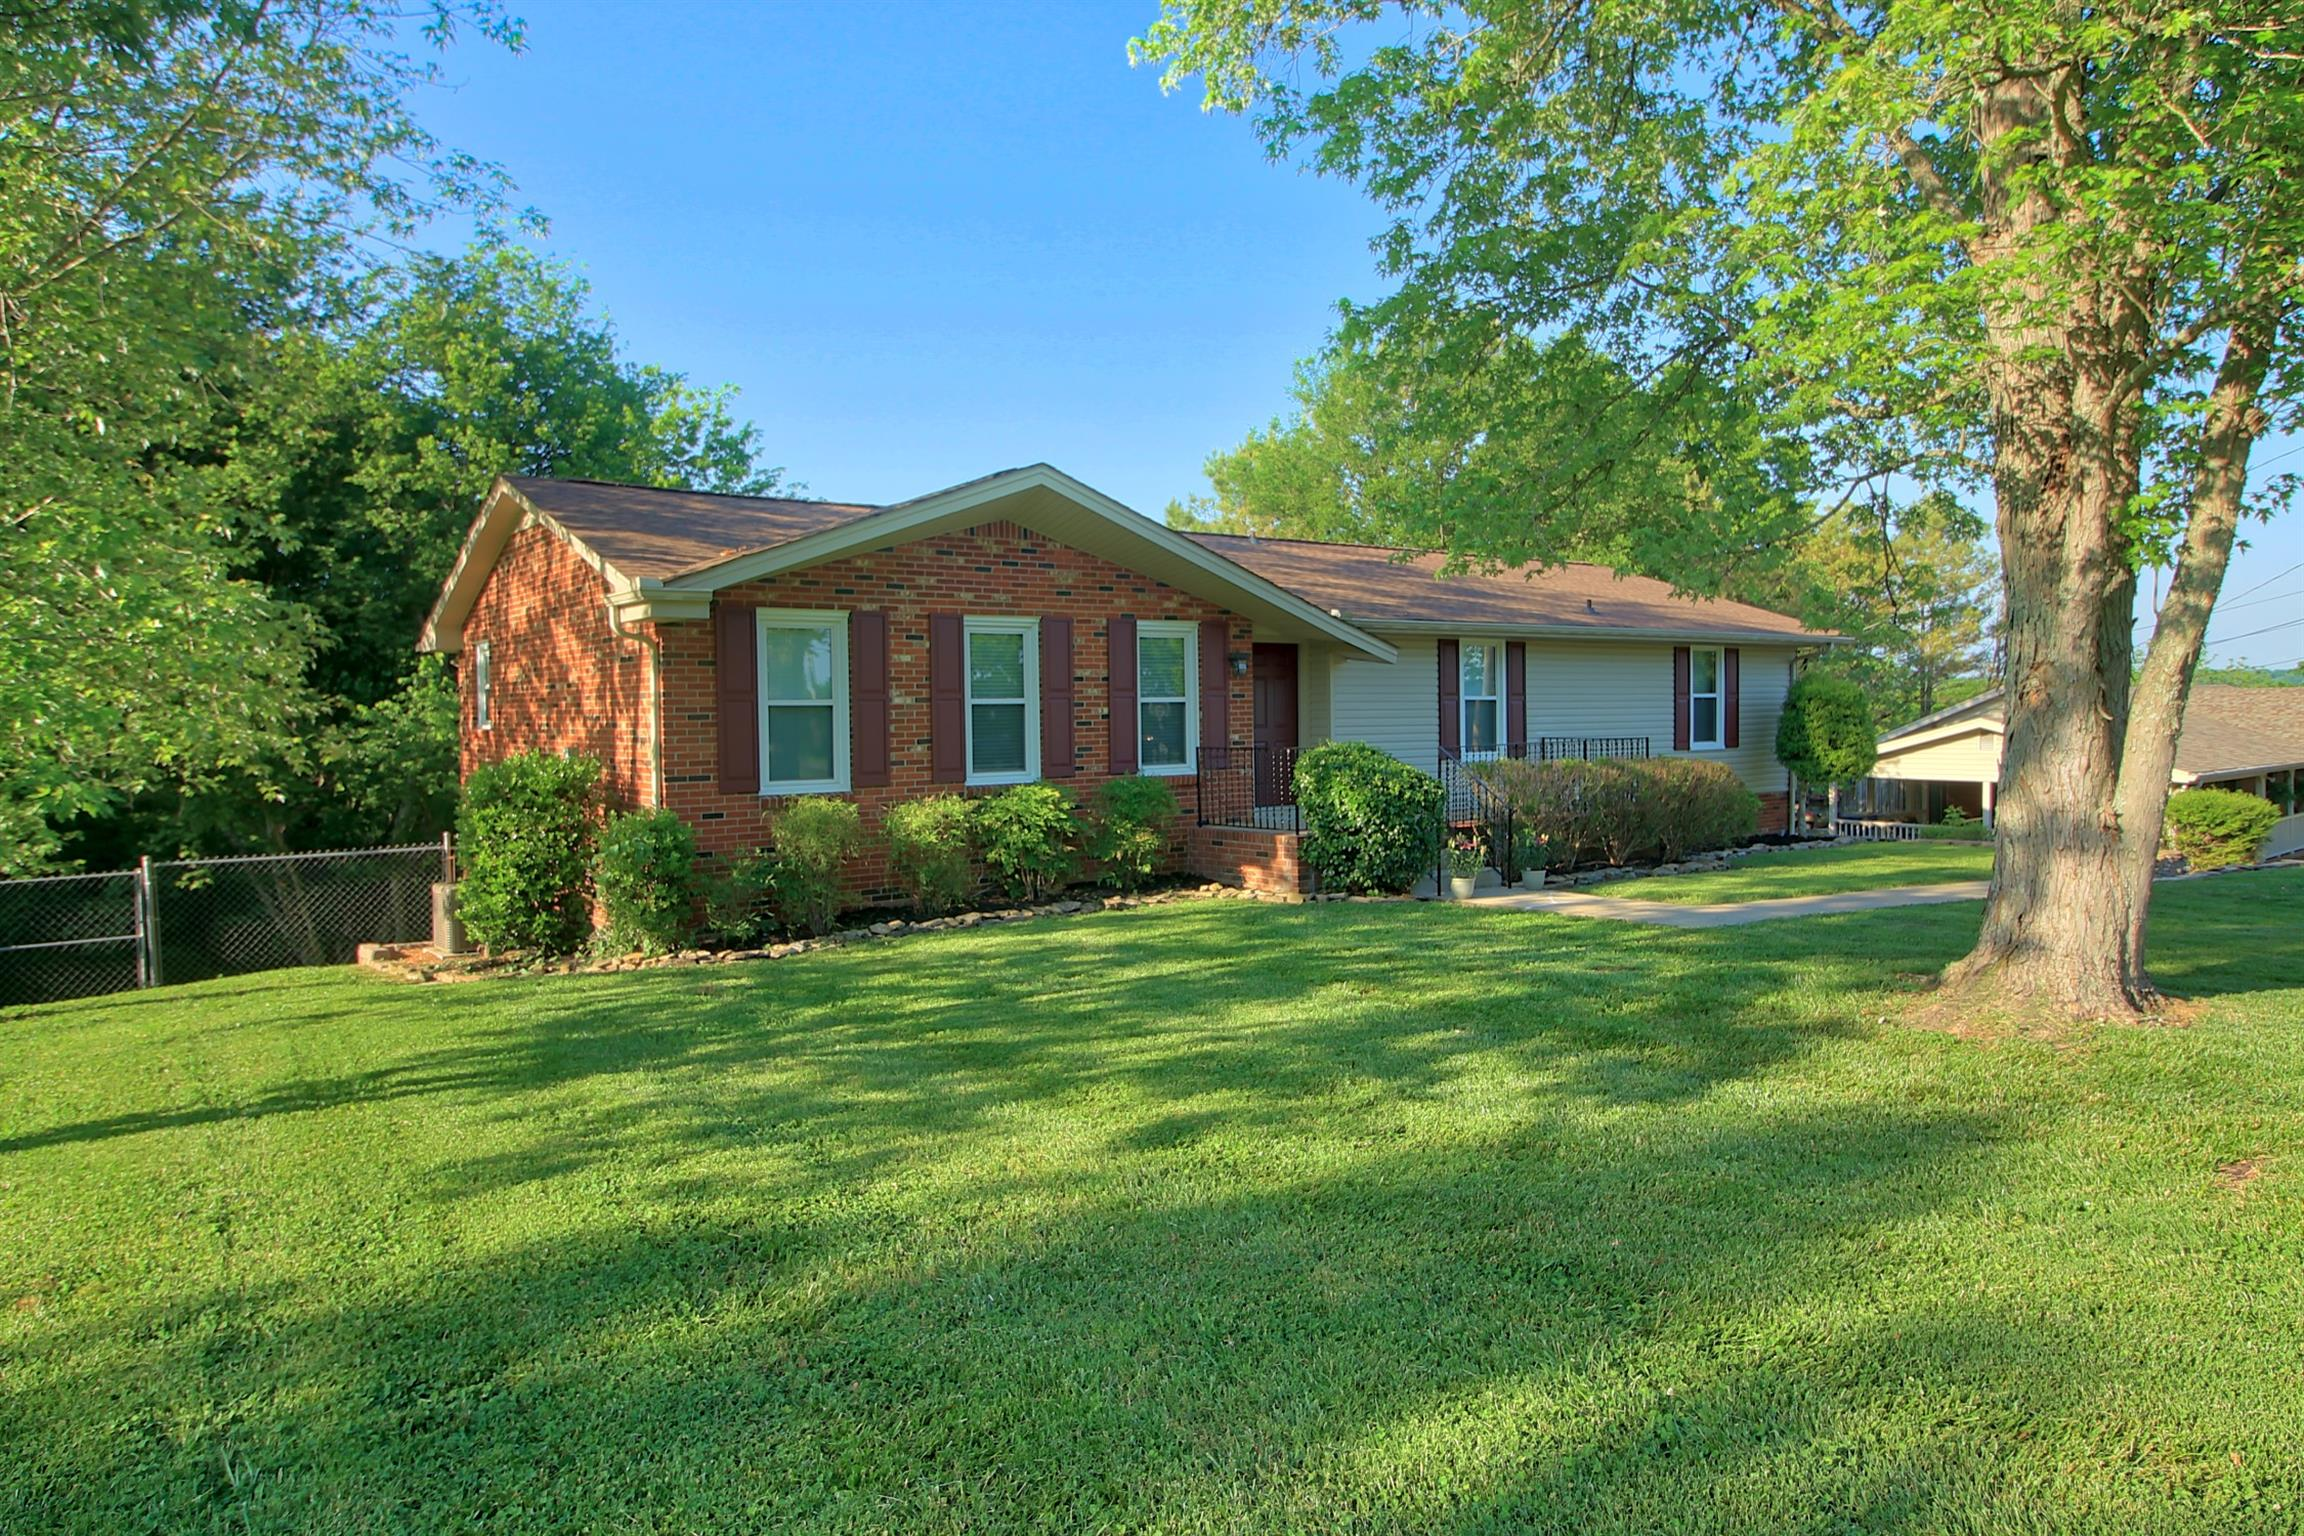 403 Isaac Dr, Goodlettsville in Davidson County County, TN 37072 Home for Sale